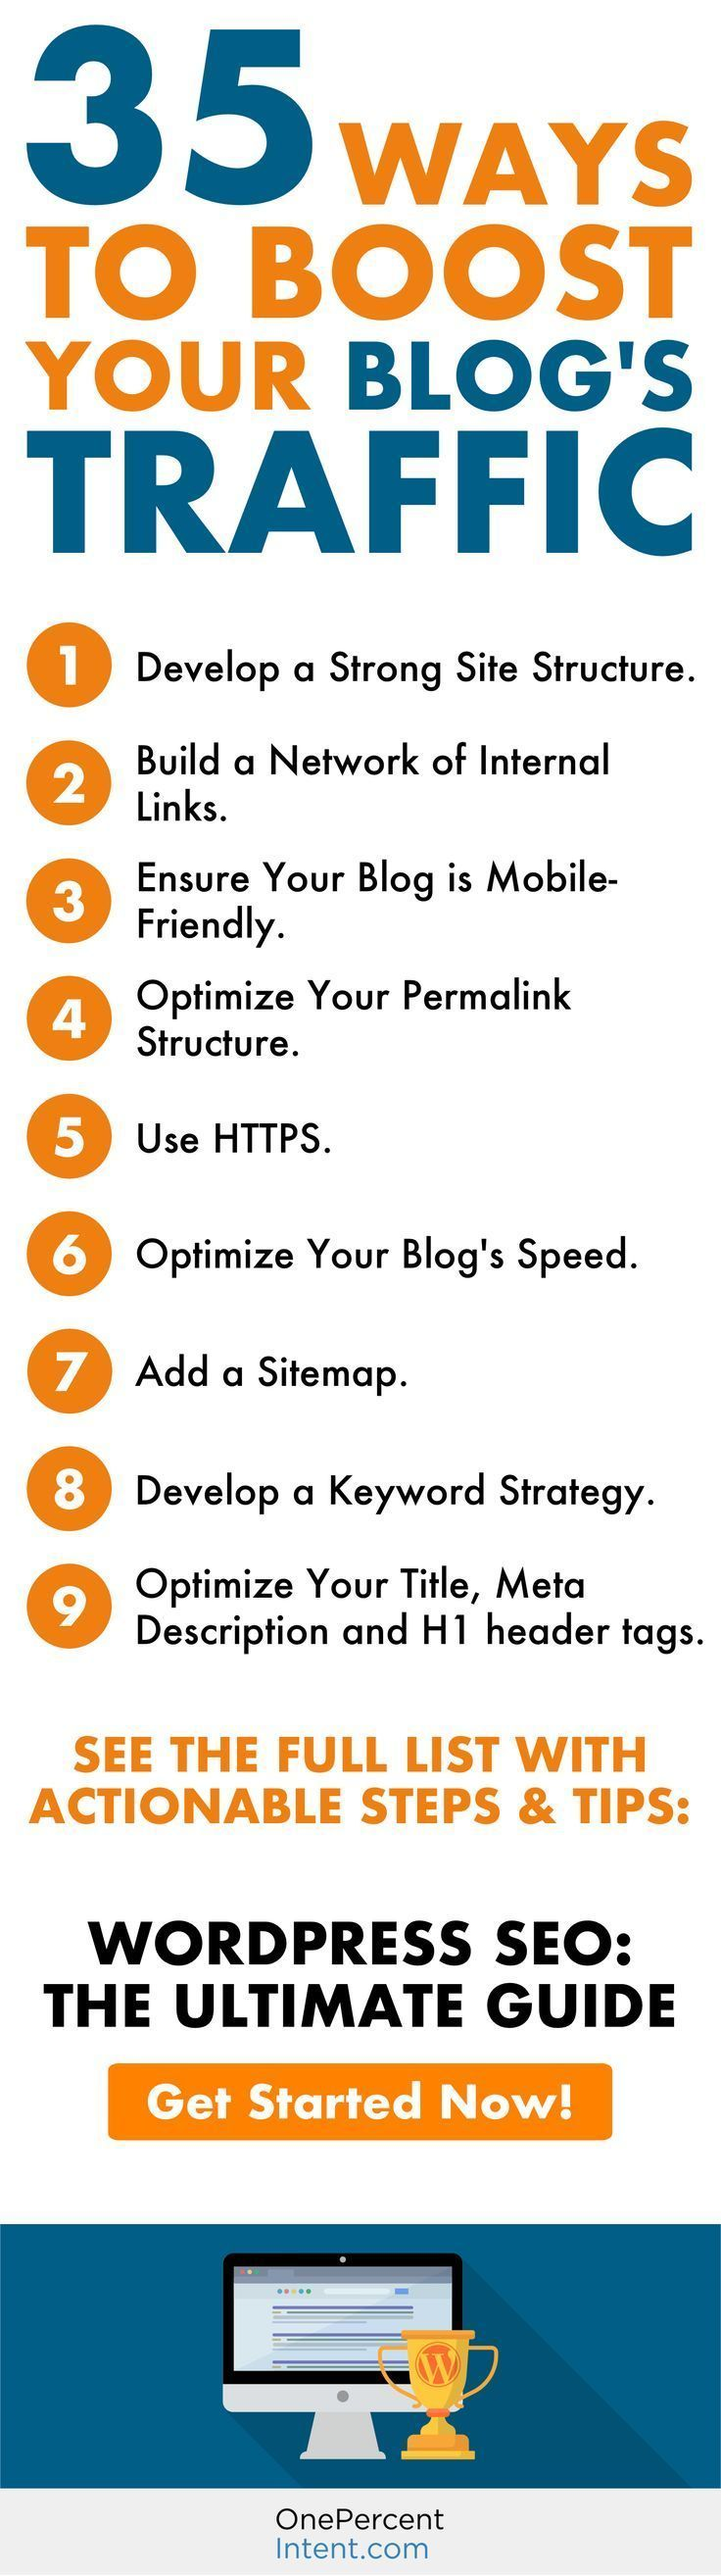 WordPress SEO The Ultimate Guide Increase blog traffic